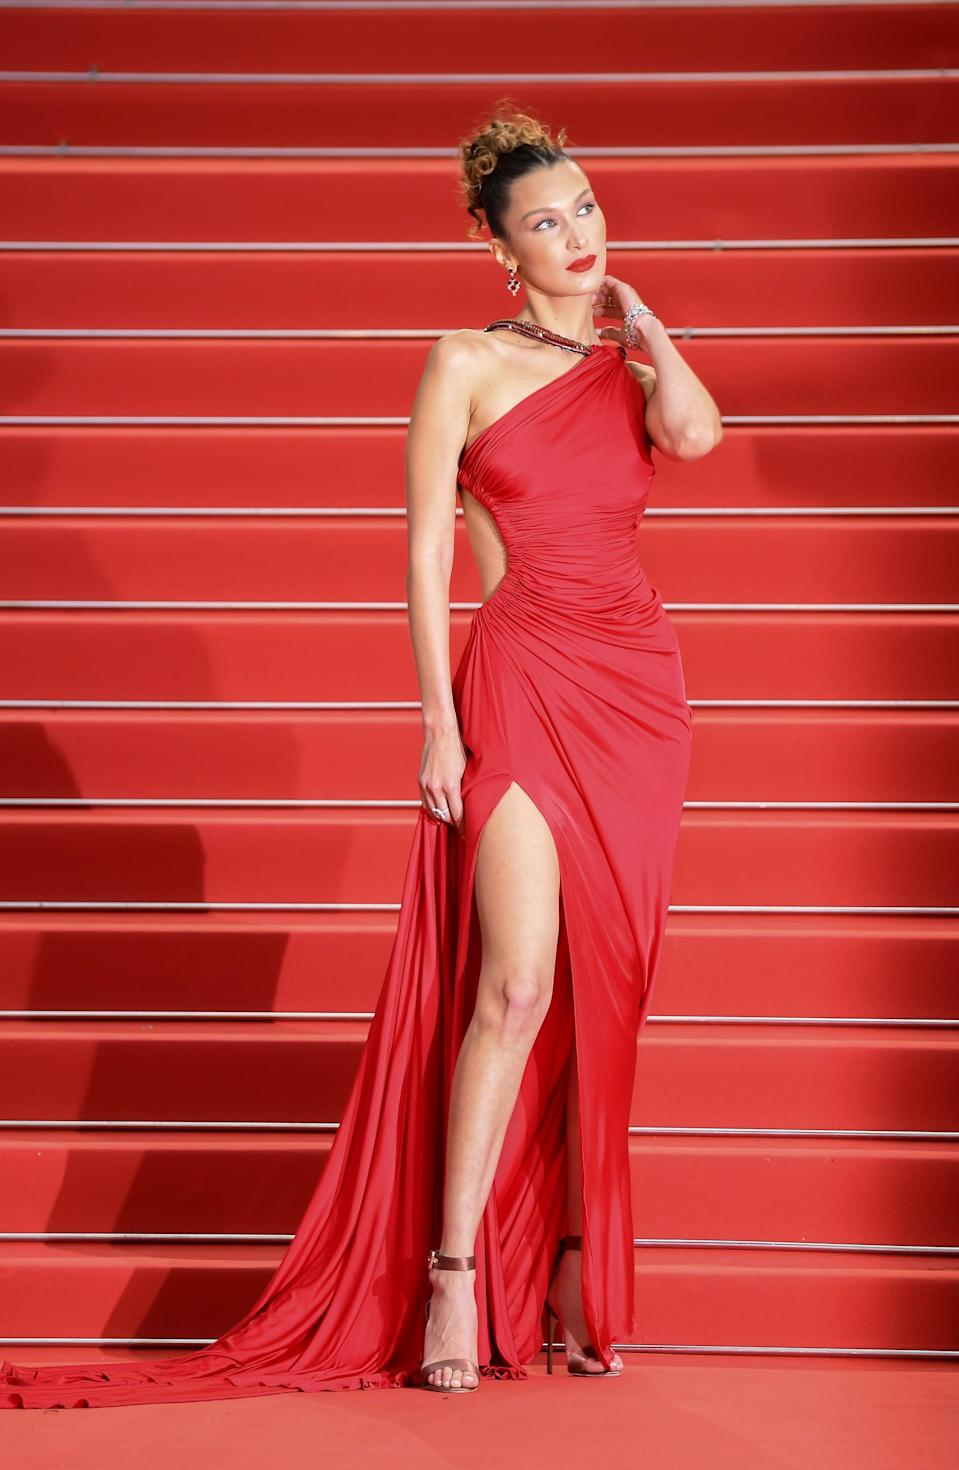 If There's No Built-In Bodysuit in Bella Hadid's Red Dress, Well, Then God Bless Her